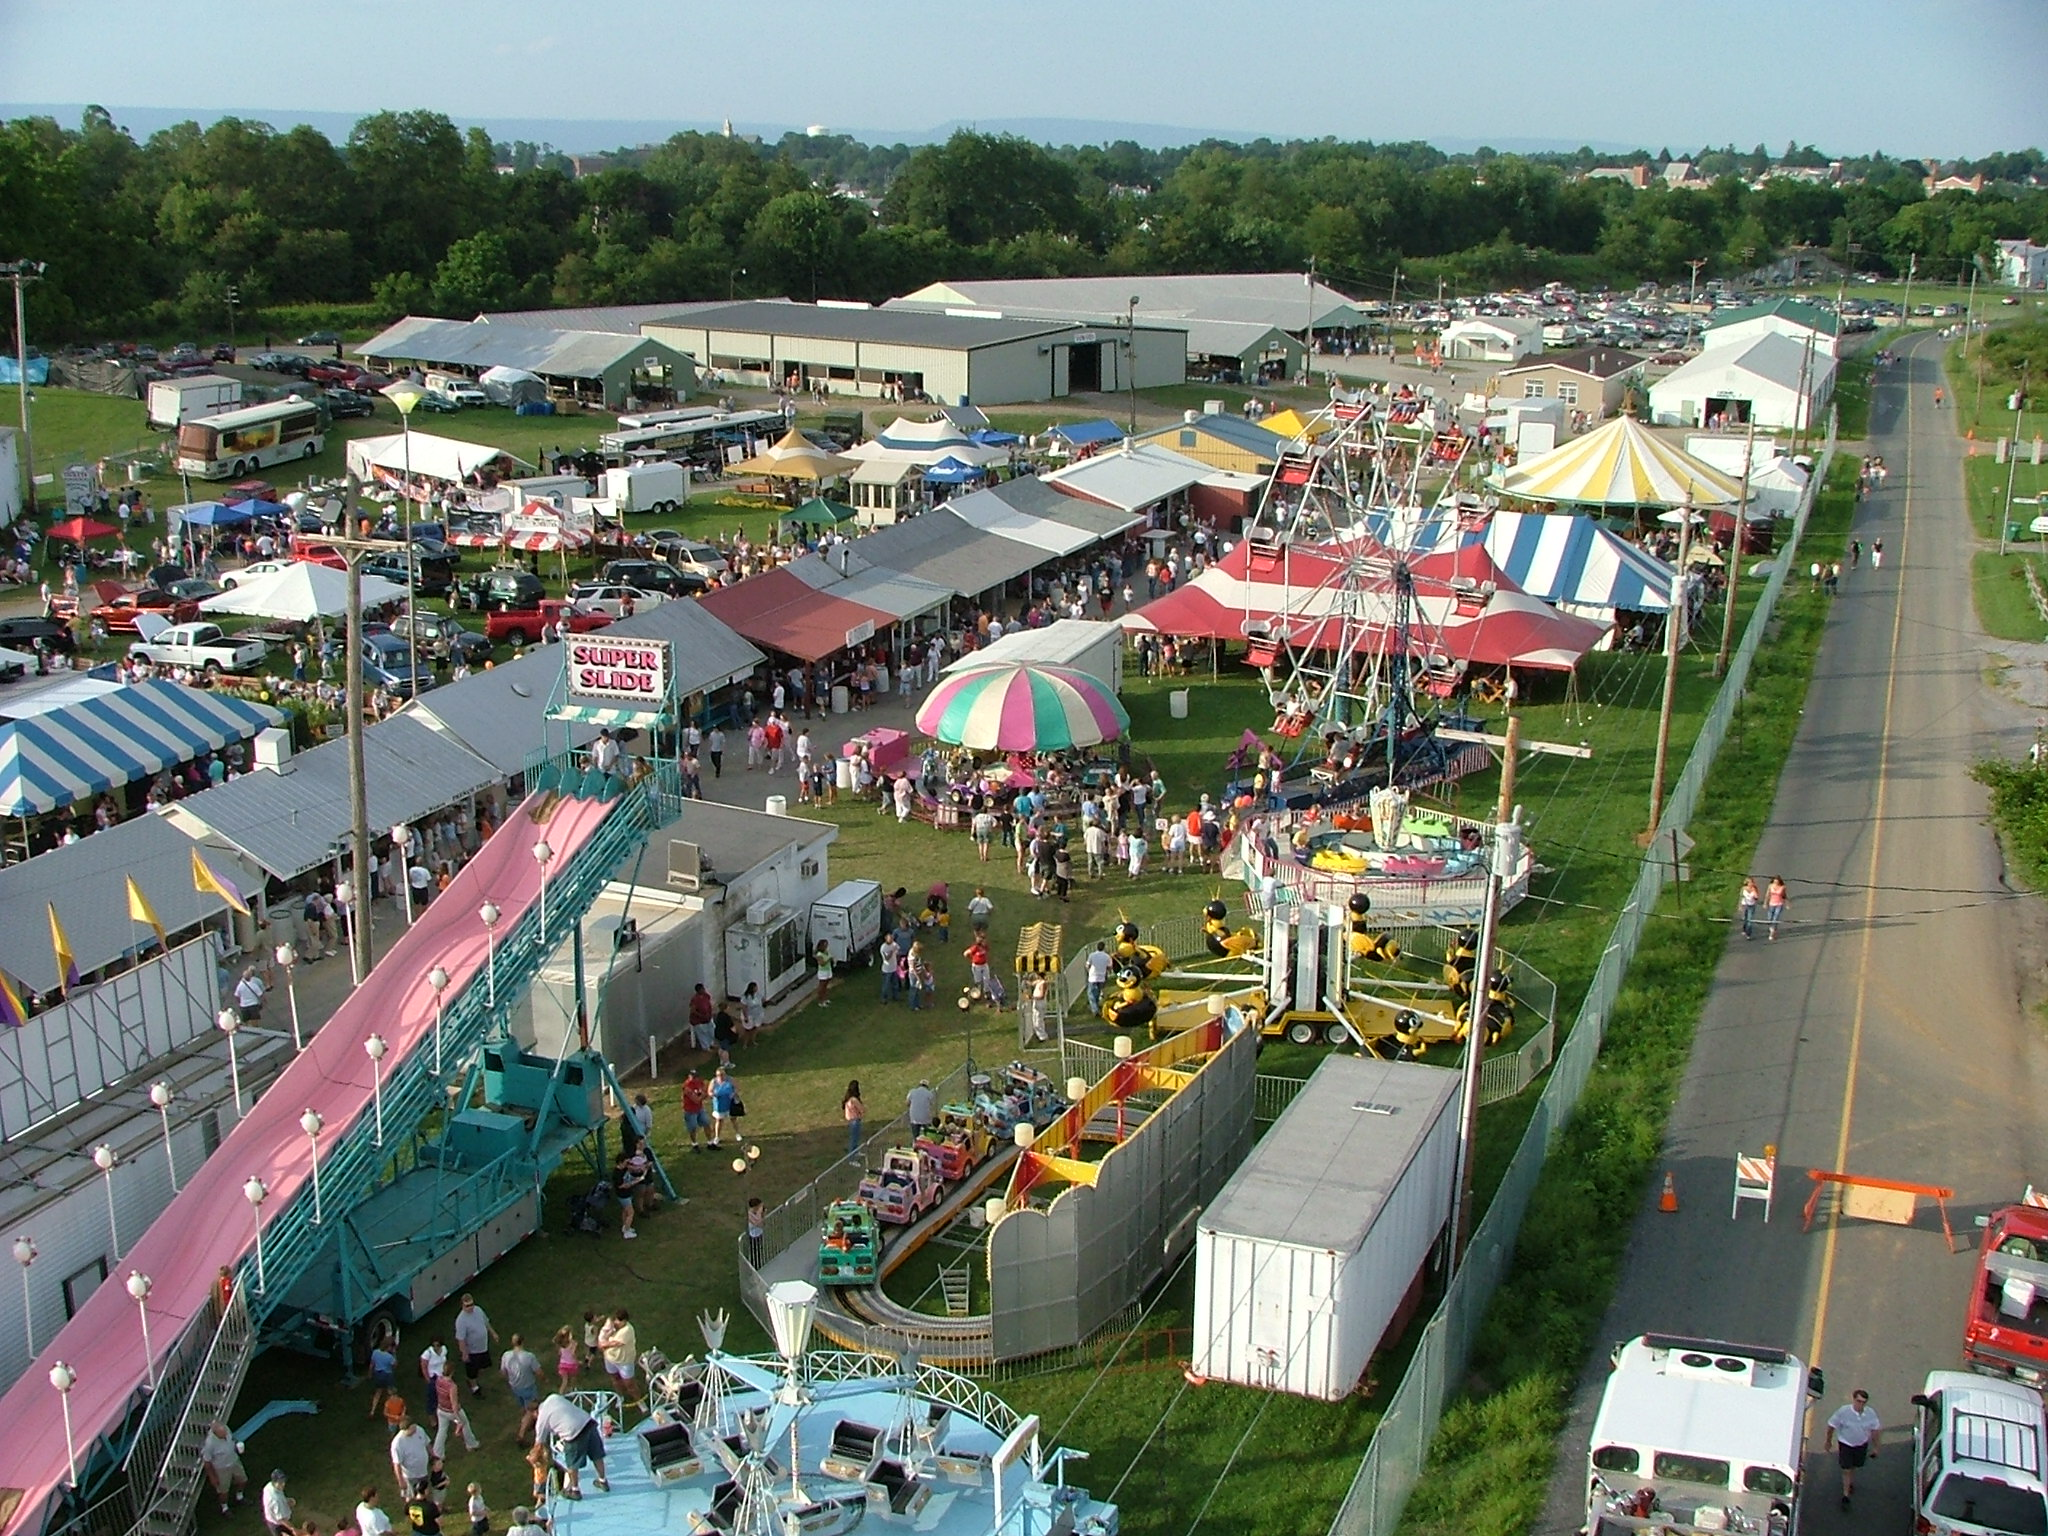 Today the Shippensburg Community Fair features permanent buildings, security fencing, and lots of rides, food stands and amenities for our guests!